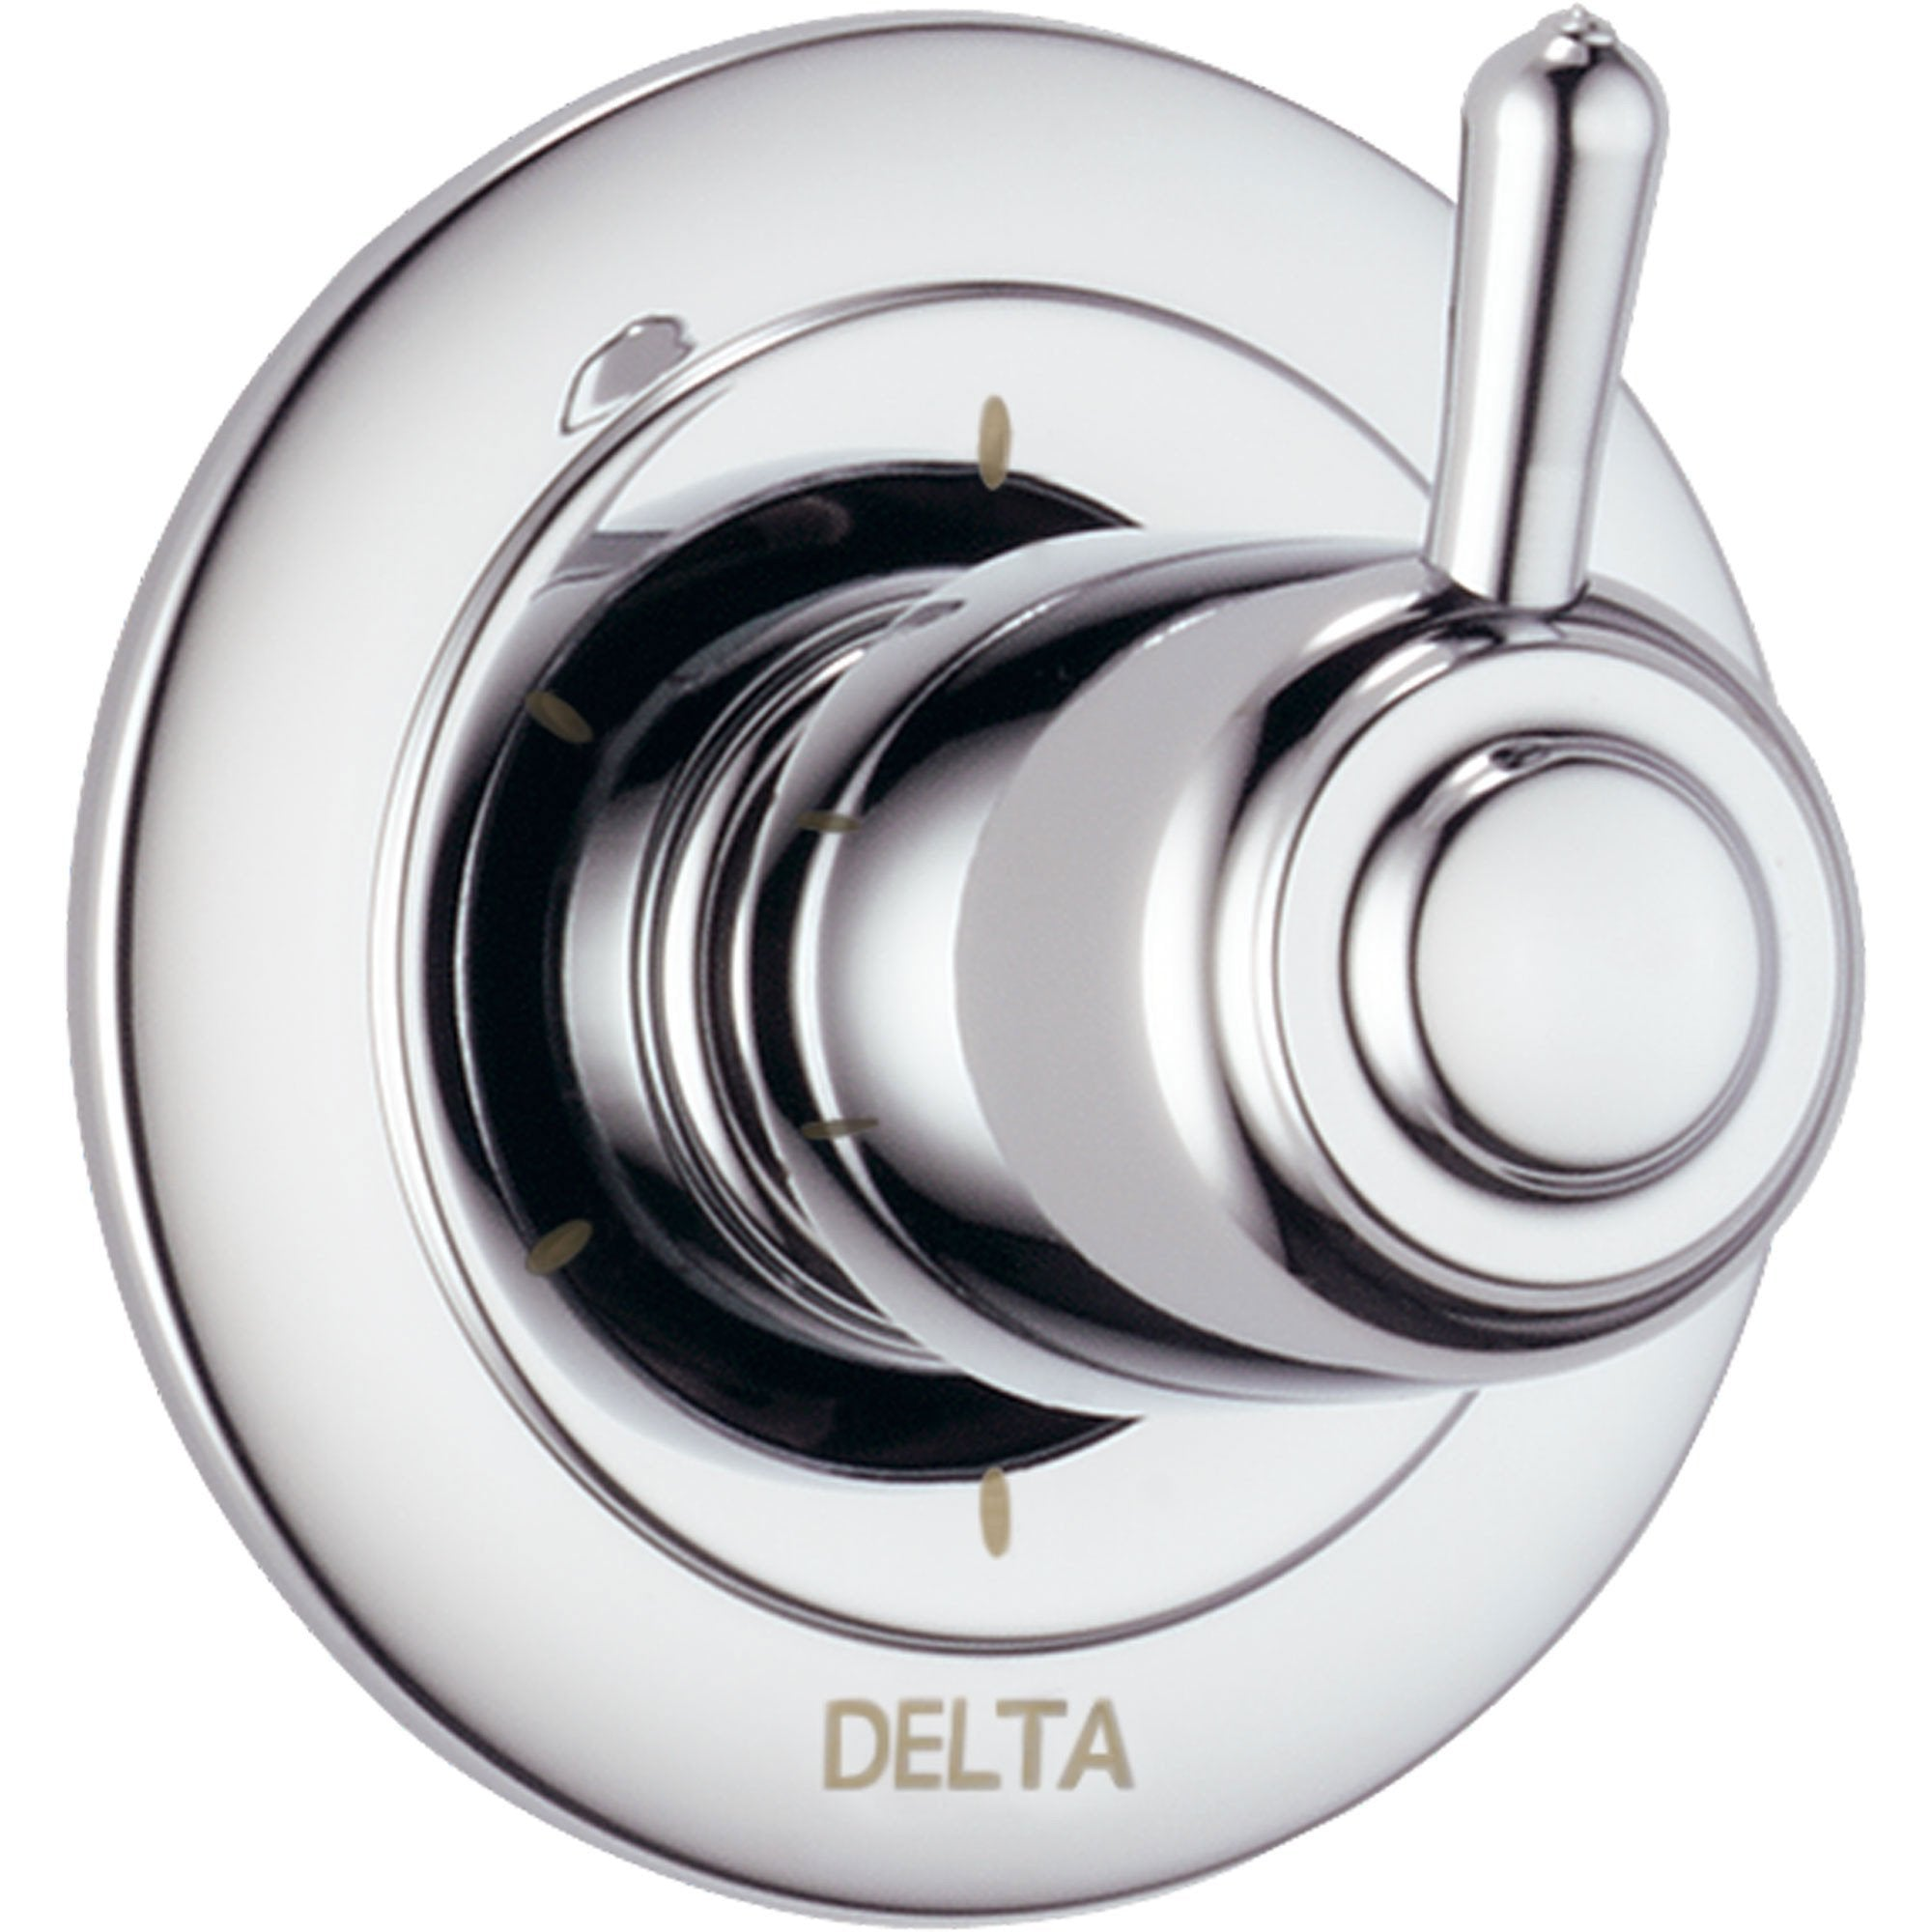 Delta Chrome Finish 6 Setting 3-Port Shower Diverter Fixture with Single Lever Handle INCLUDES Rough-in Valve D1327V